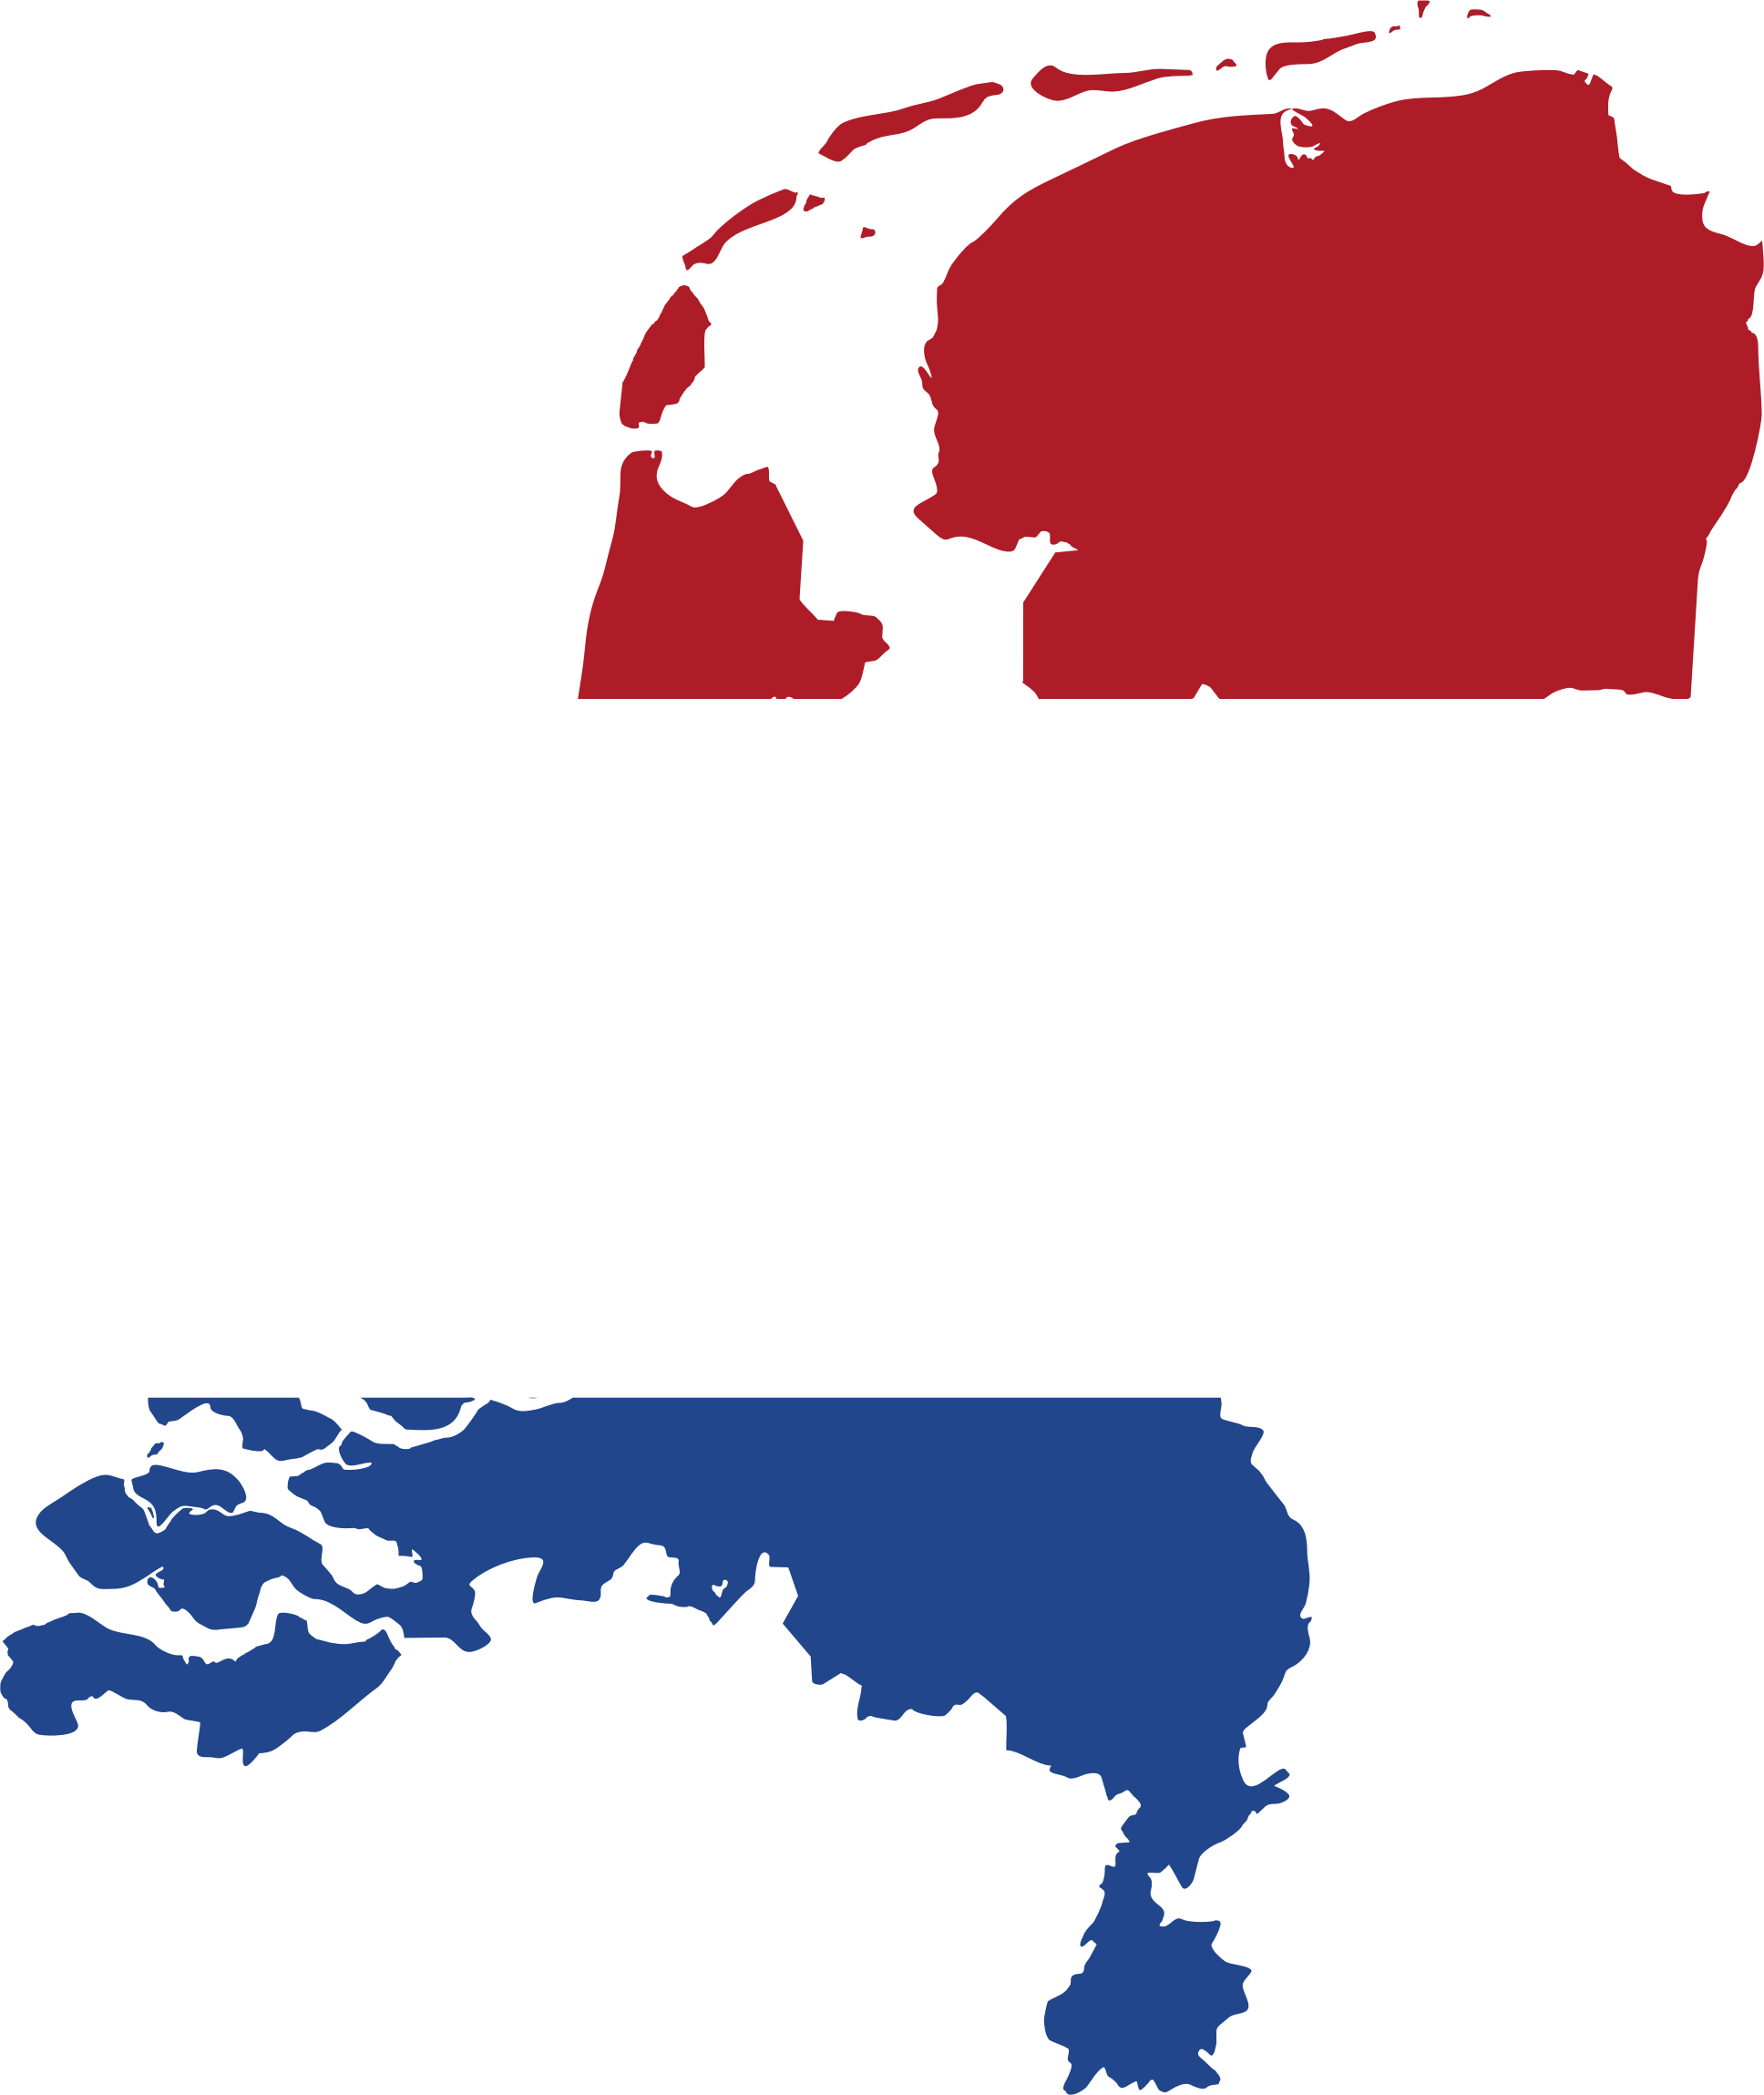 The Netherlands clipart #9, Download drawings